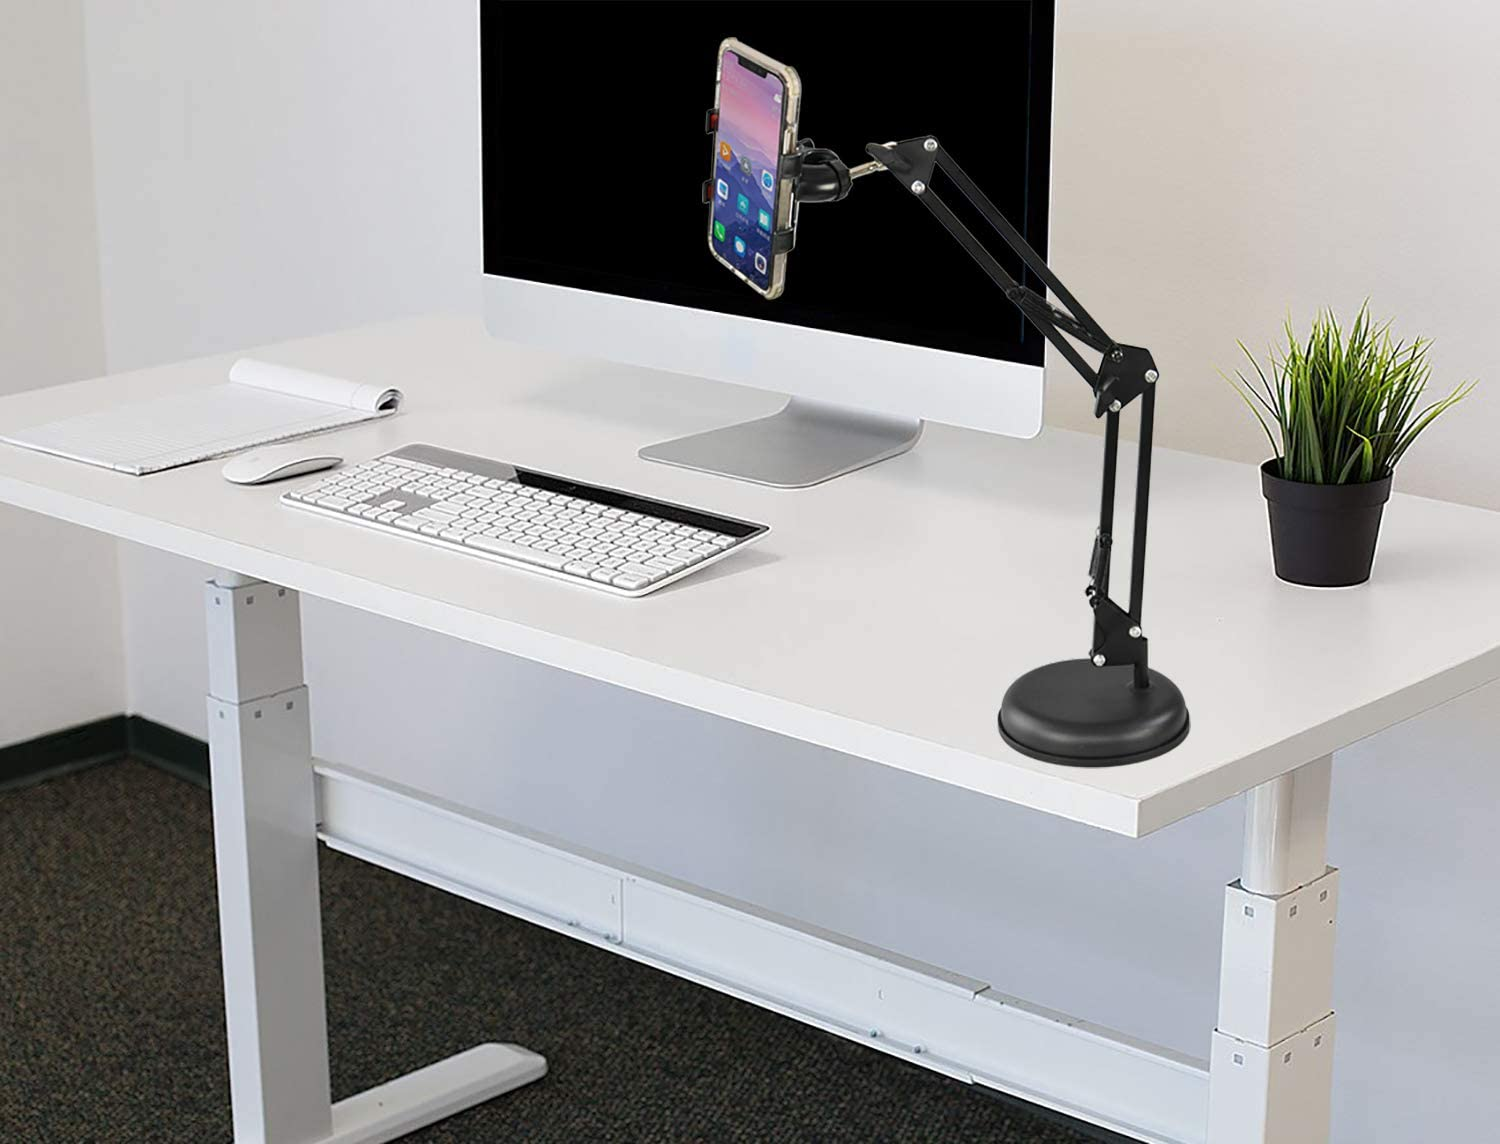 """HOME-X Desktop Telescopic Phone Stand, Adjustable Height and Weighted Base, Universal Phone Clip and Flexible 360-Degree Rotation, Black, 6"""" D adjusts from 10"""" – 24"""" H"""